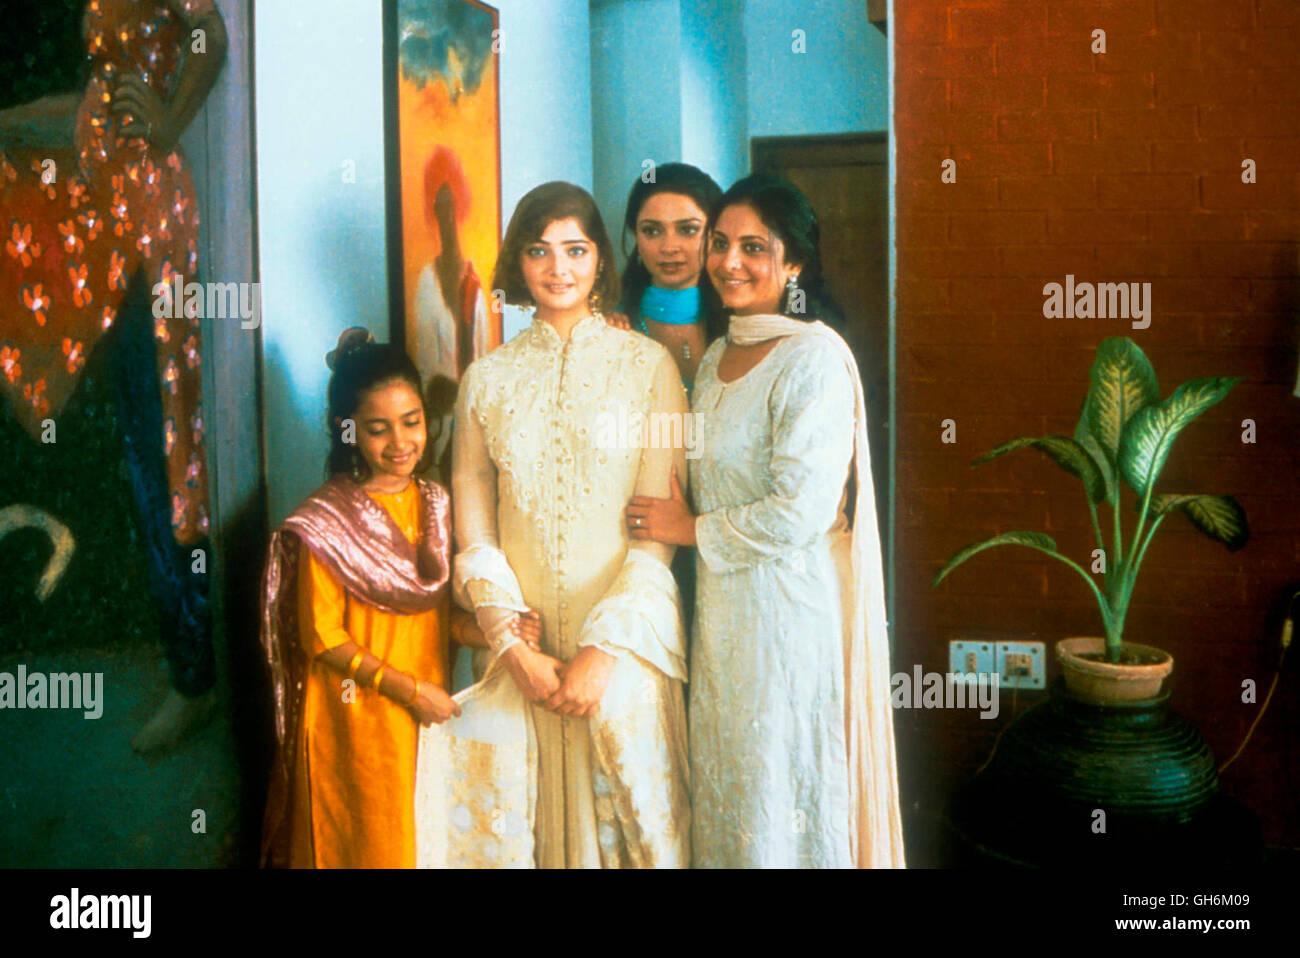 monsoon wedding monsoon wedding ind 2001 mira nair